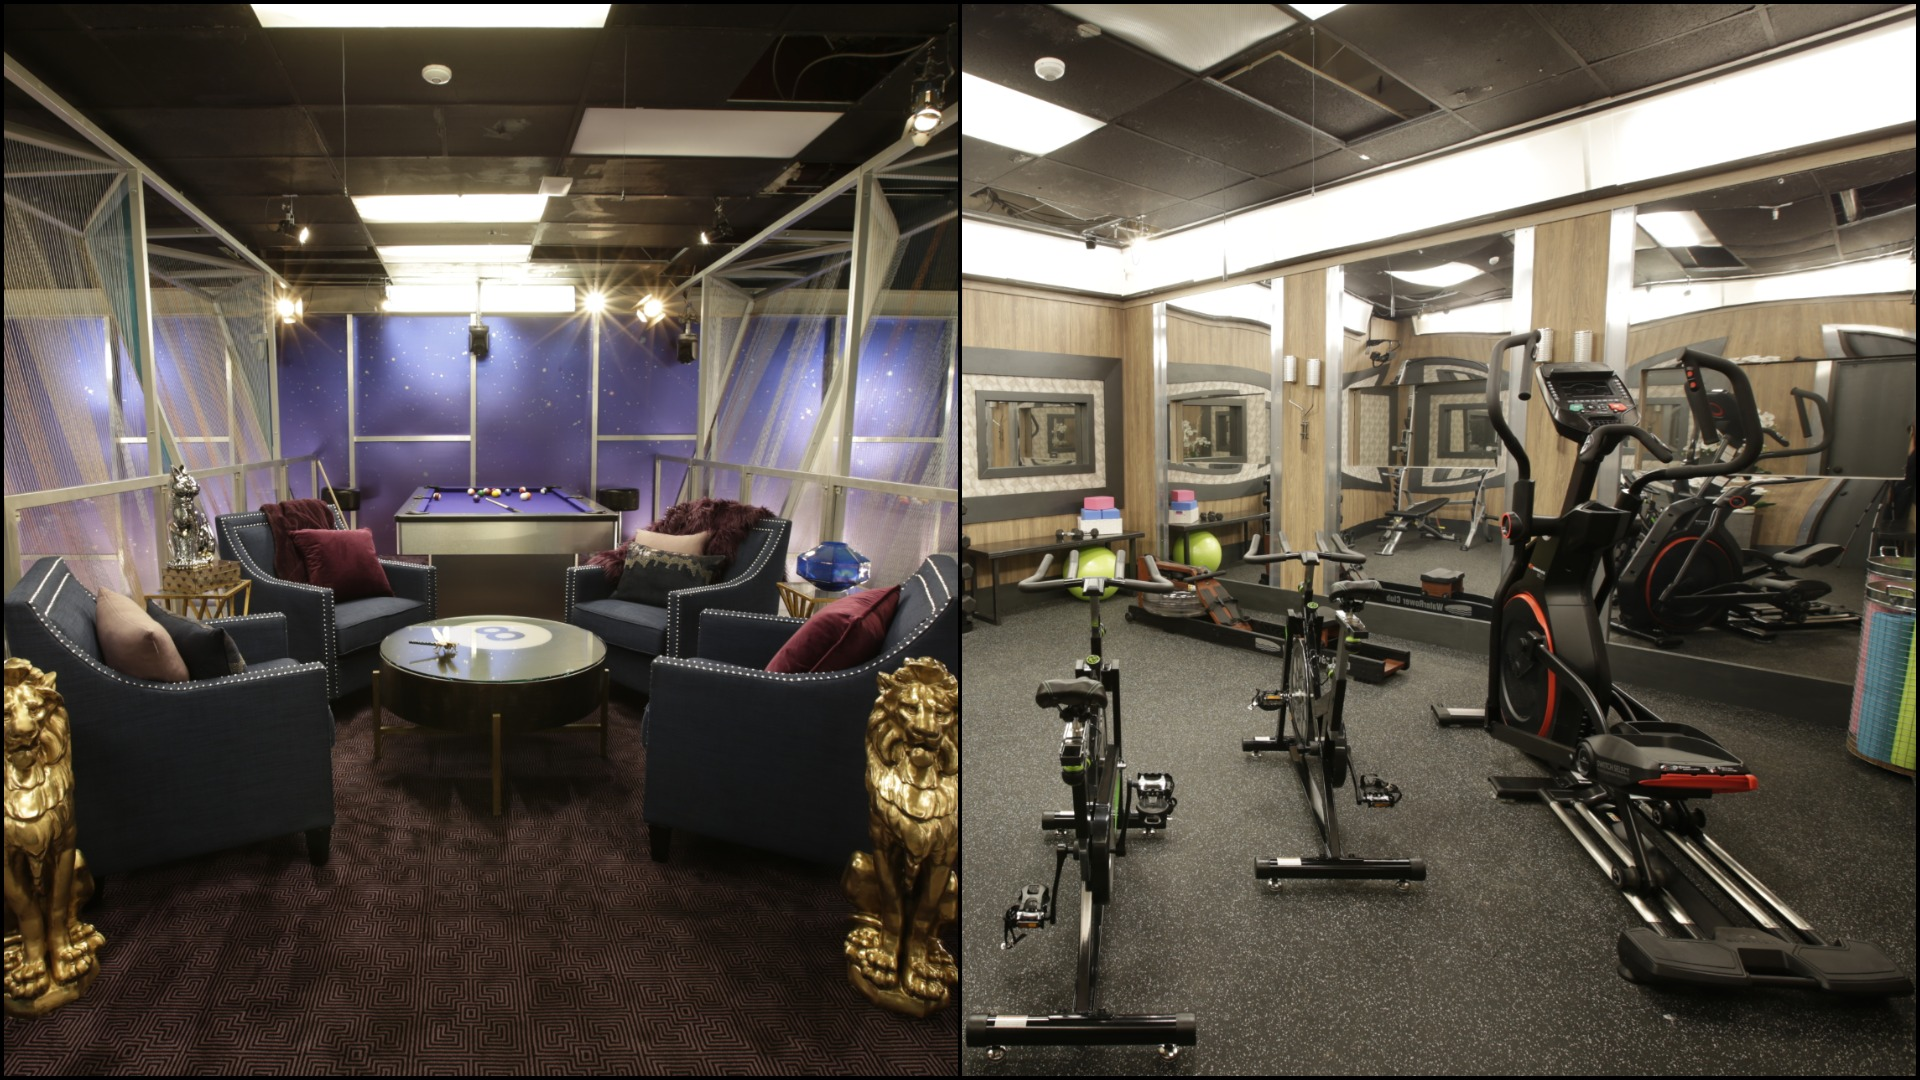 The Houseguests can break a sweat whenever they want in the 24/7 indoor gym.